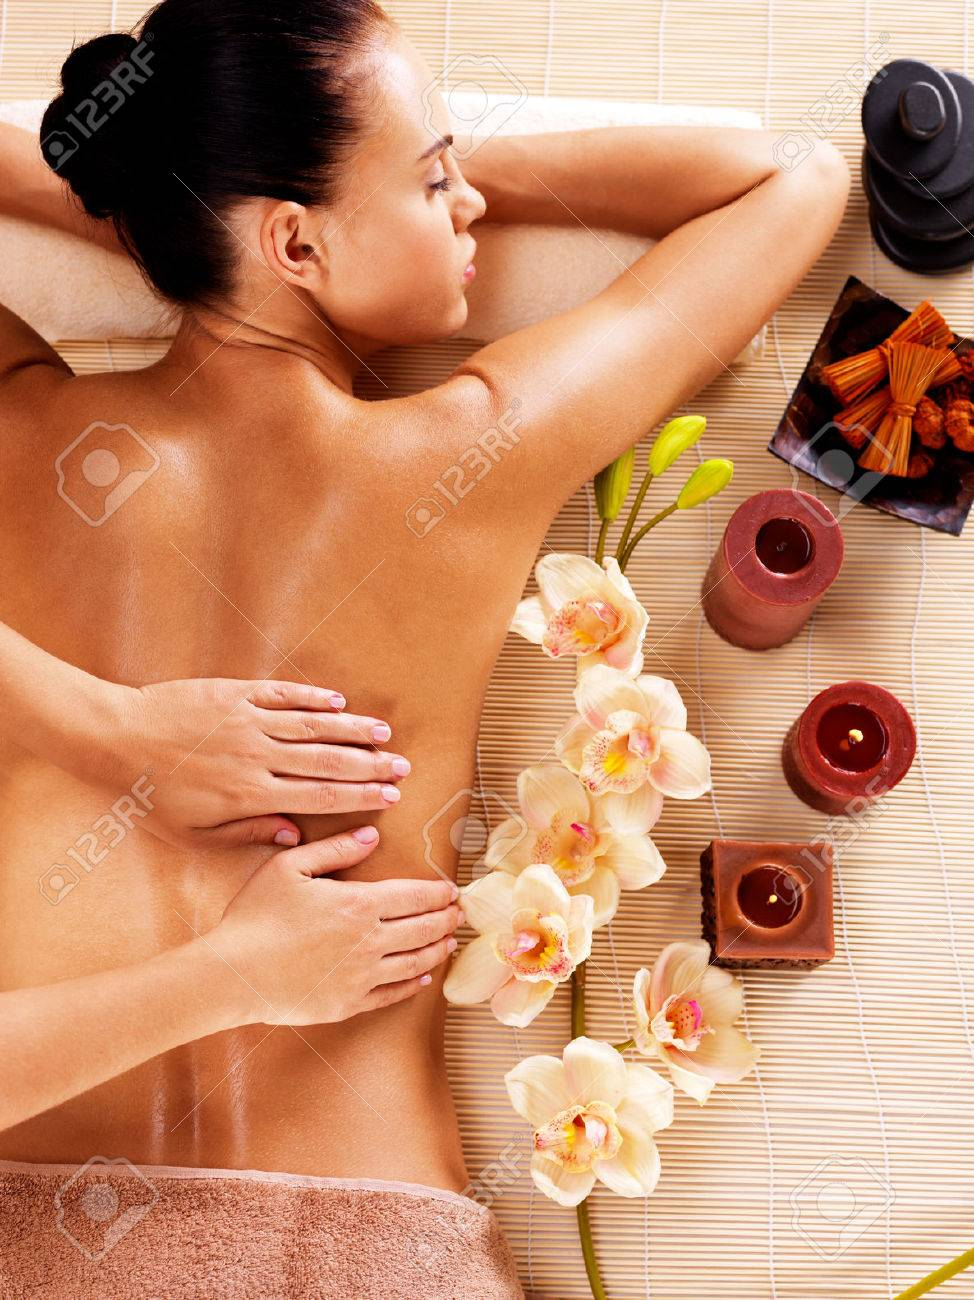 Masseur doing massage on woman back in the spa salon Banque d'images - 53559298